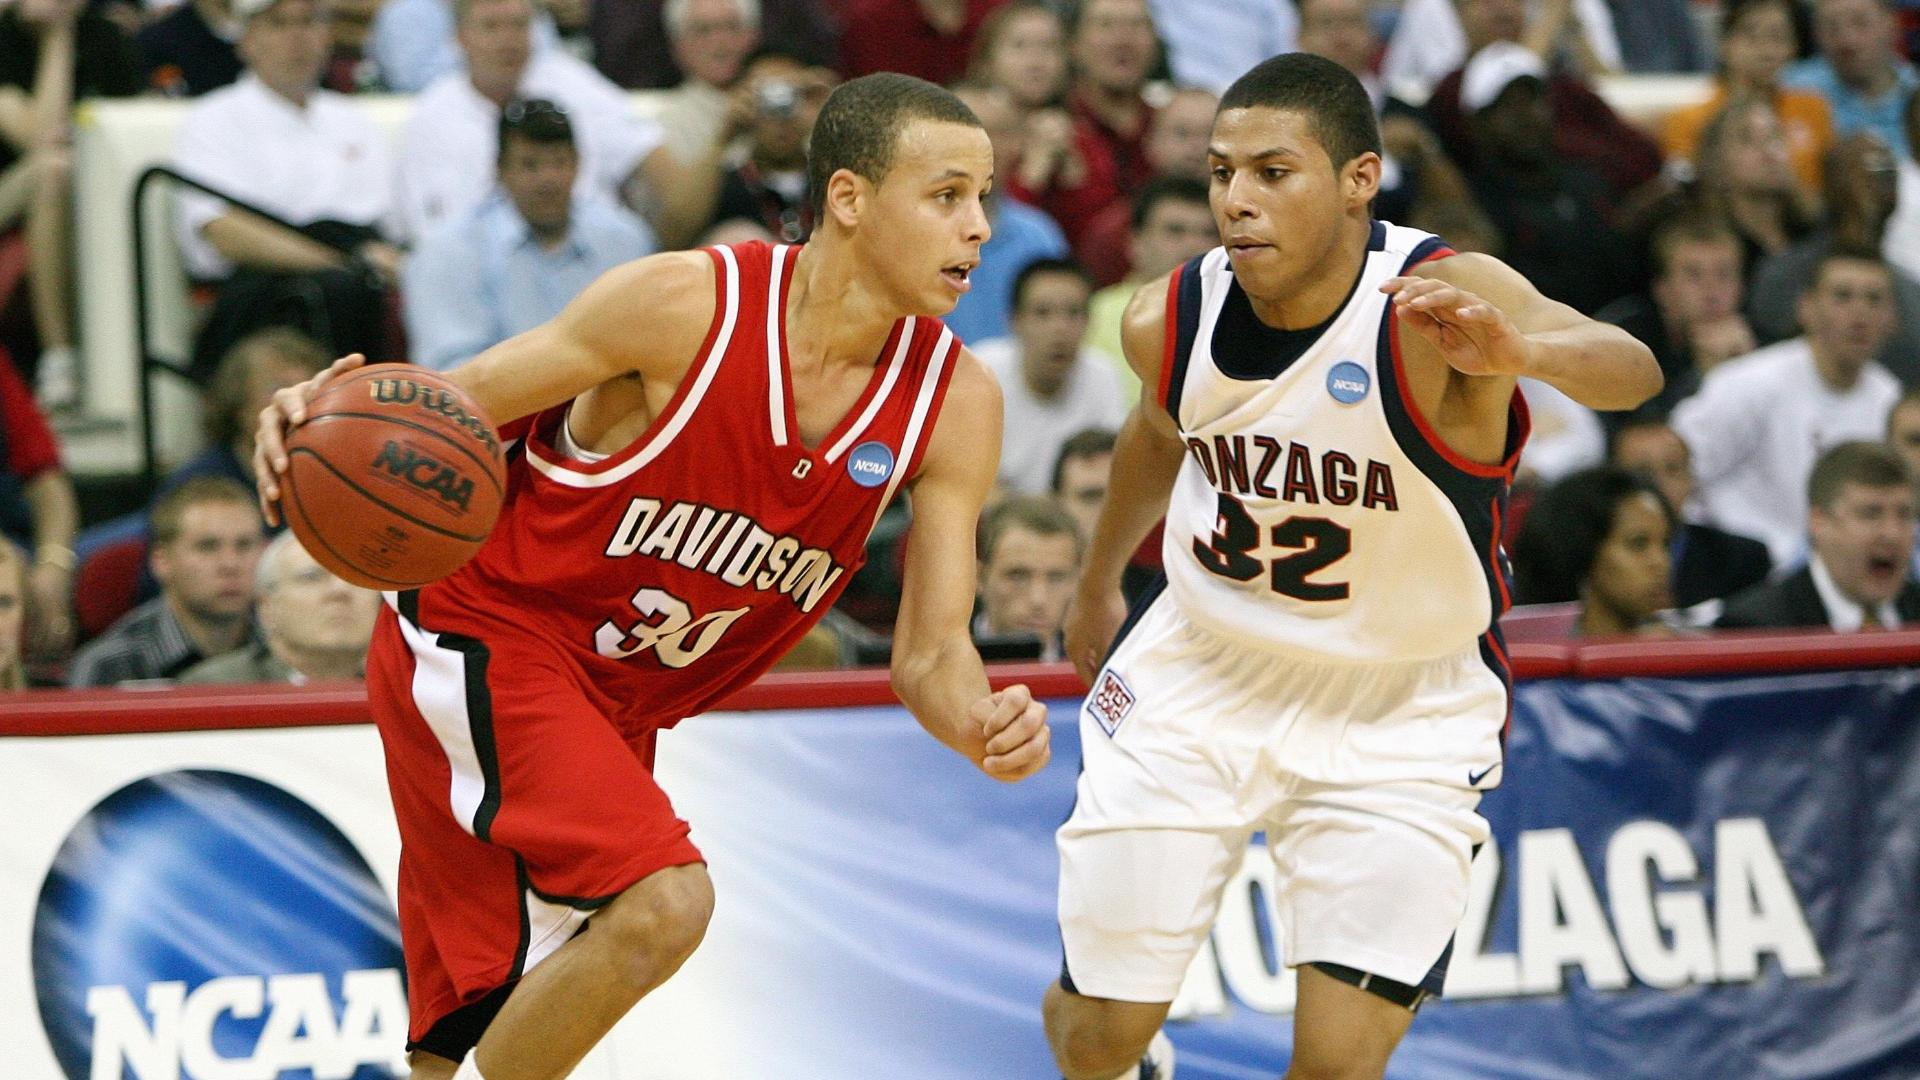 On this date: Curry drops 40 on Gonzaga